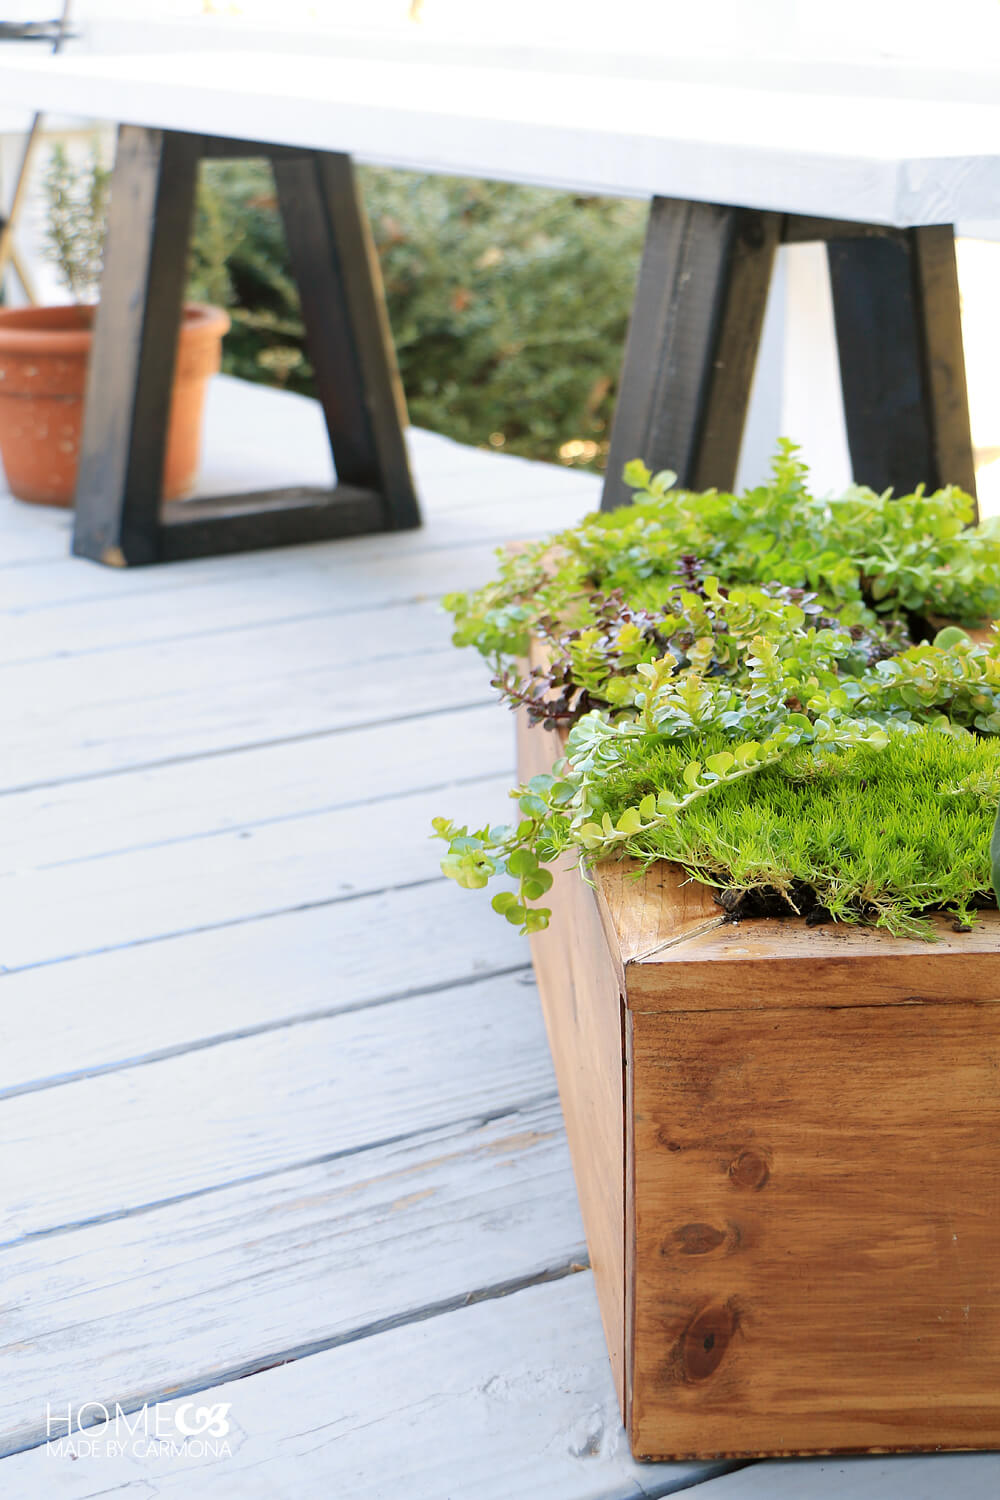 Do-it-yourself planter